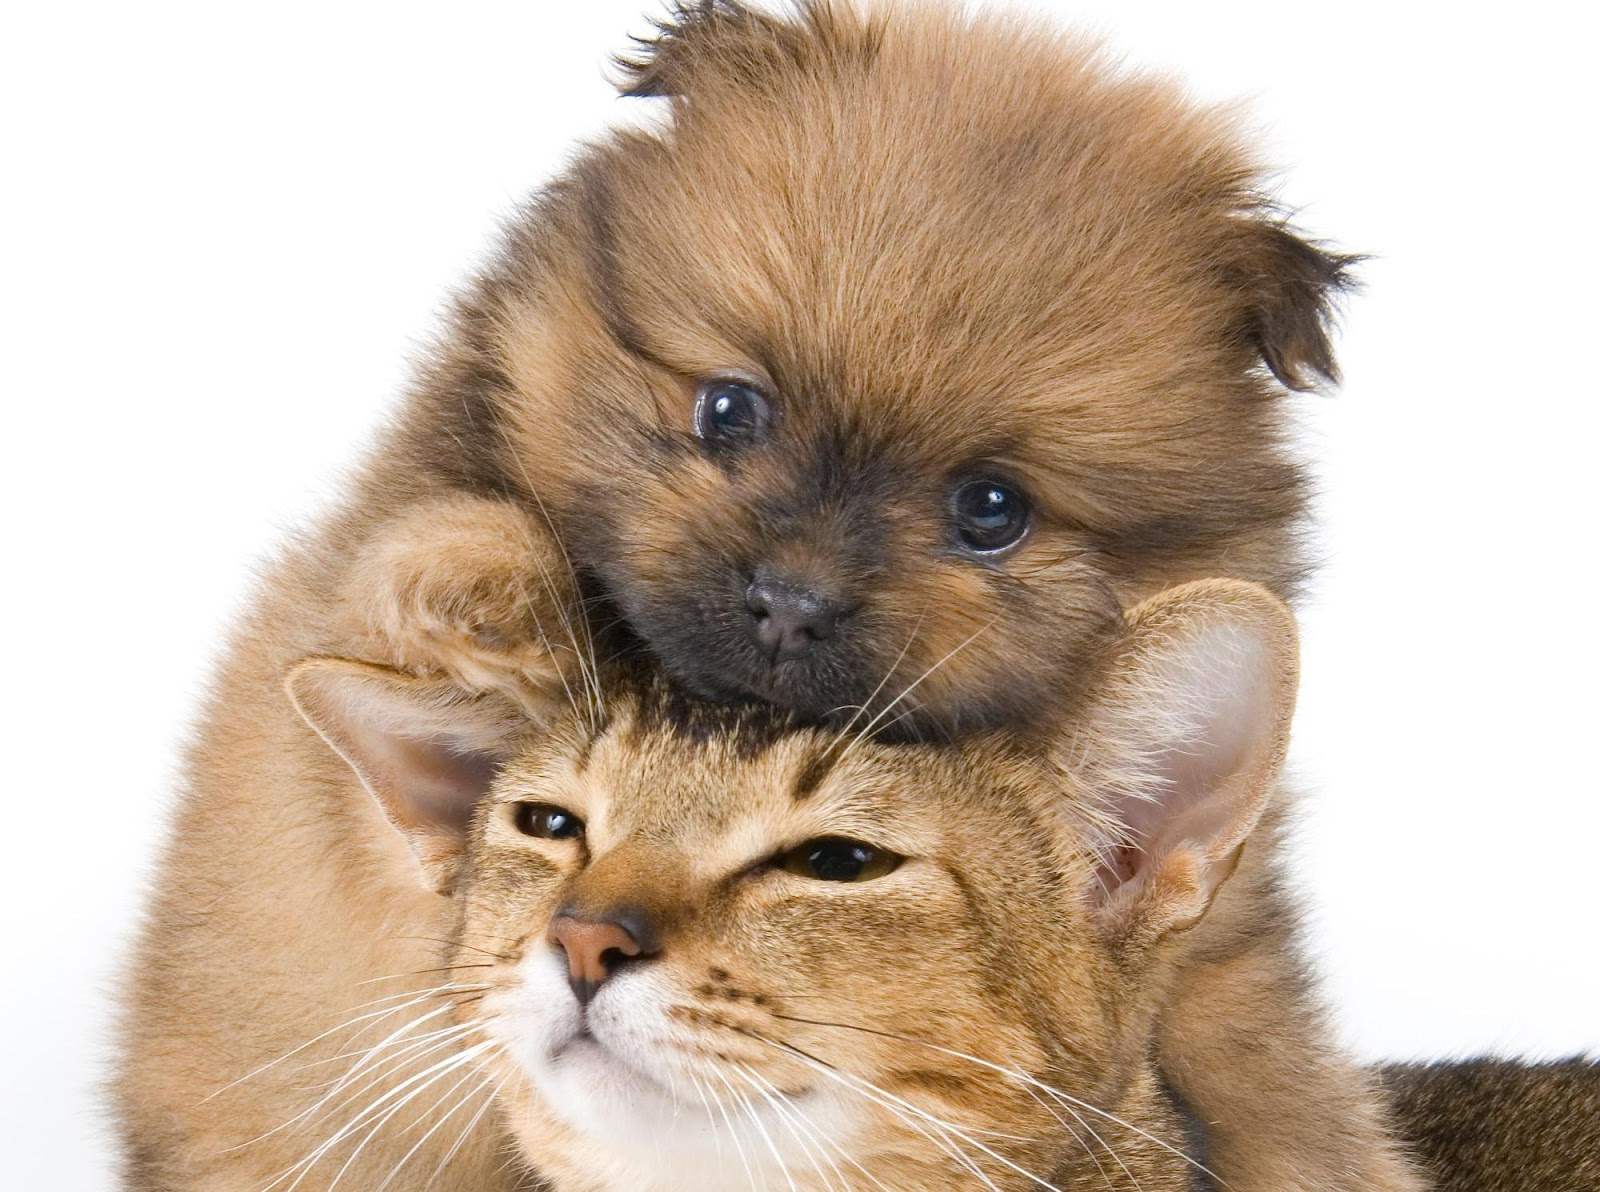 Cute Puppies And Kittens Wallpaper: Dogs And Cats Wallpaper